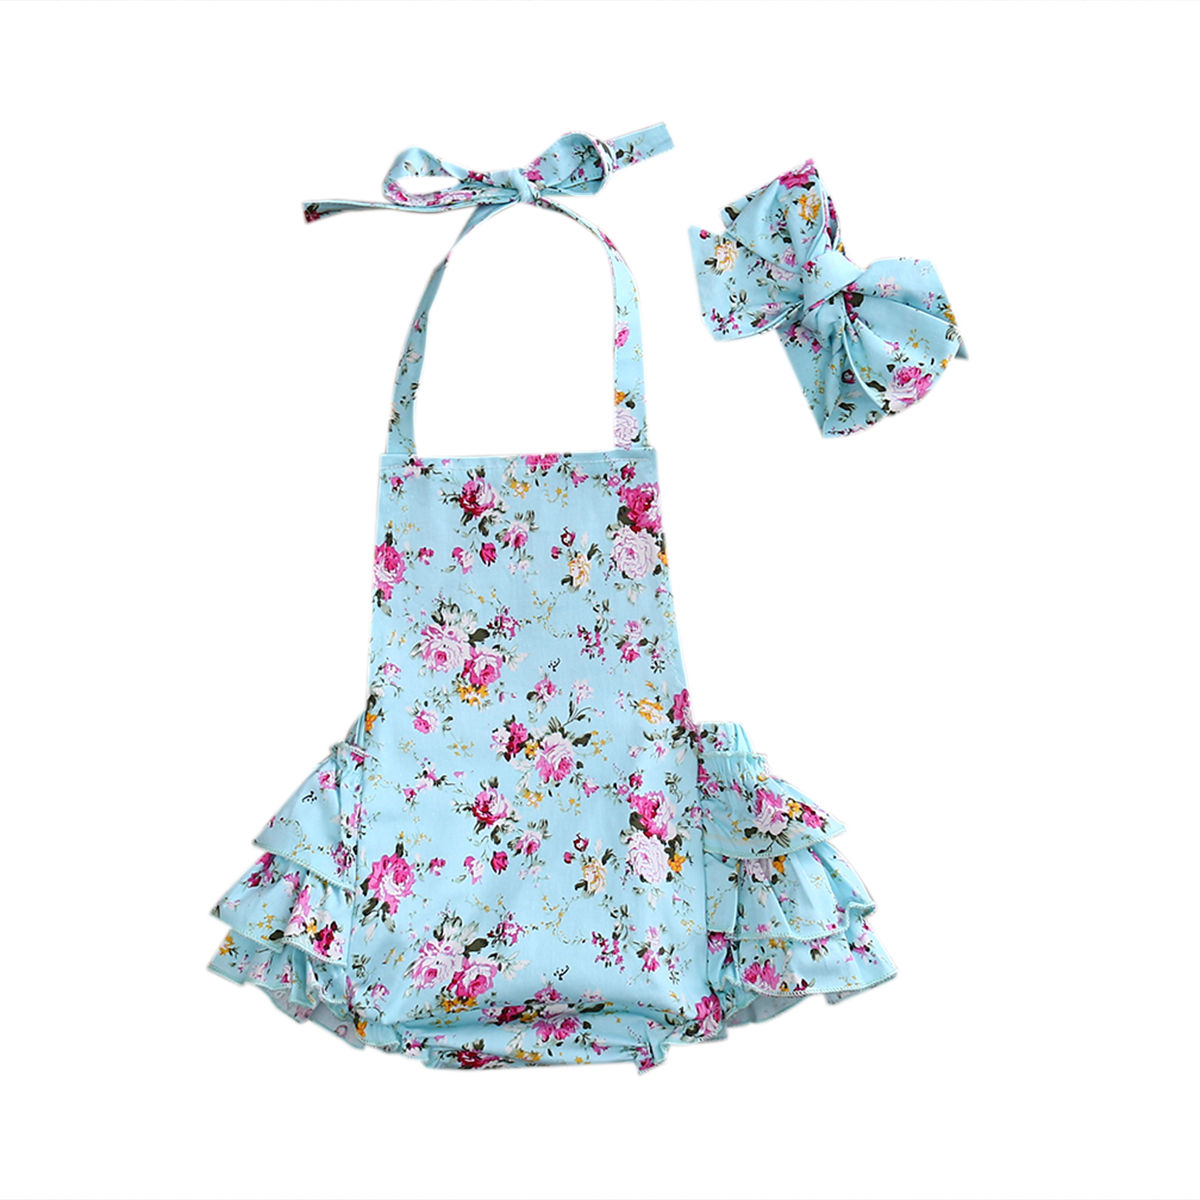 Summer Newborn Infant Baby Girls Floral Tiered Romper Jumpsuit Outfit Sunsuit Playsuit Belt Cotton Clothes summer newborn infant baby girl romper short sleeve floral romper jumpsuit outfits sunsuit clothes